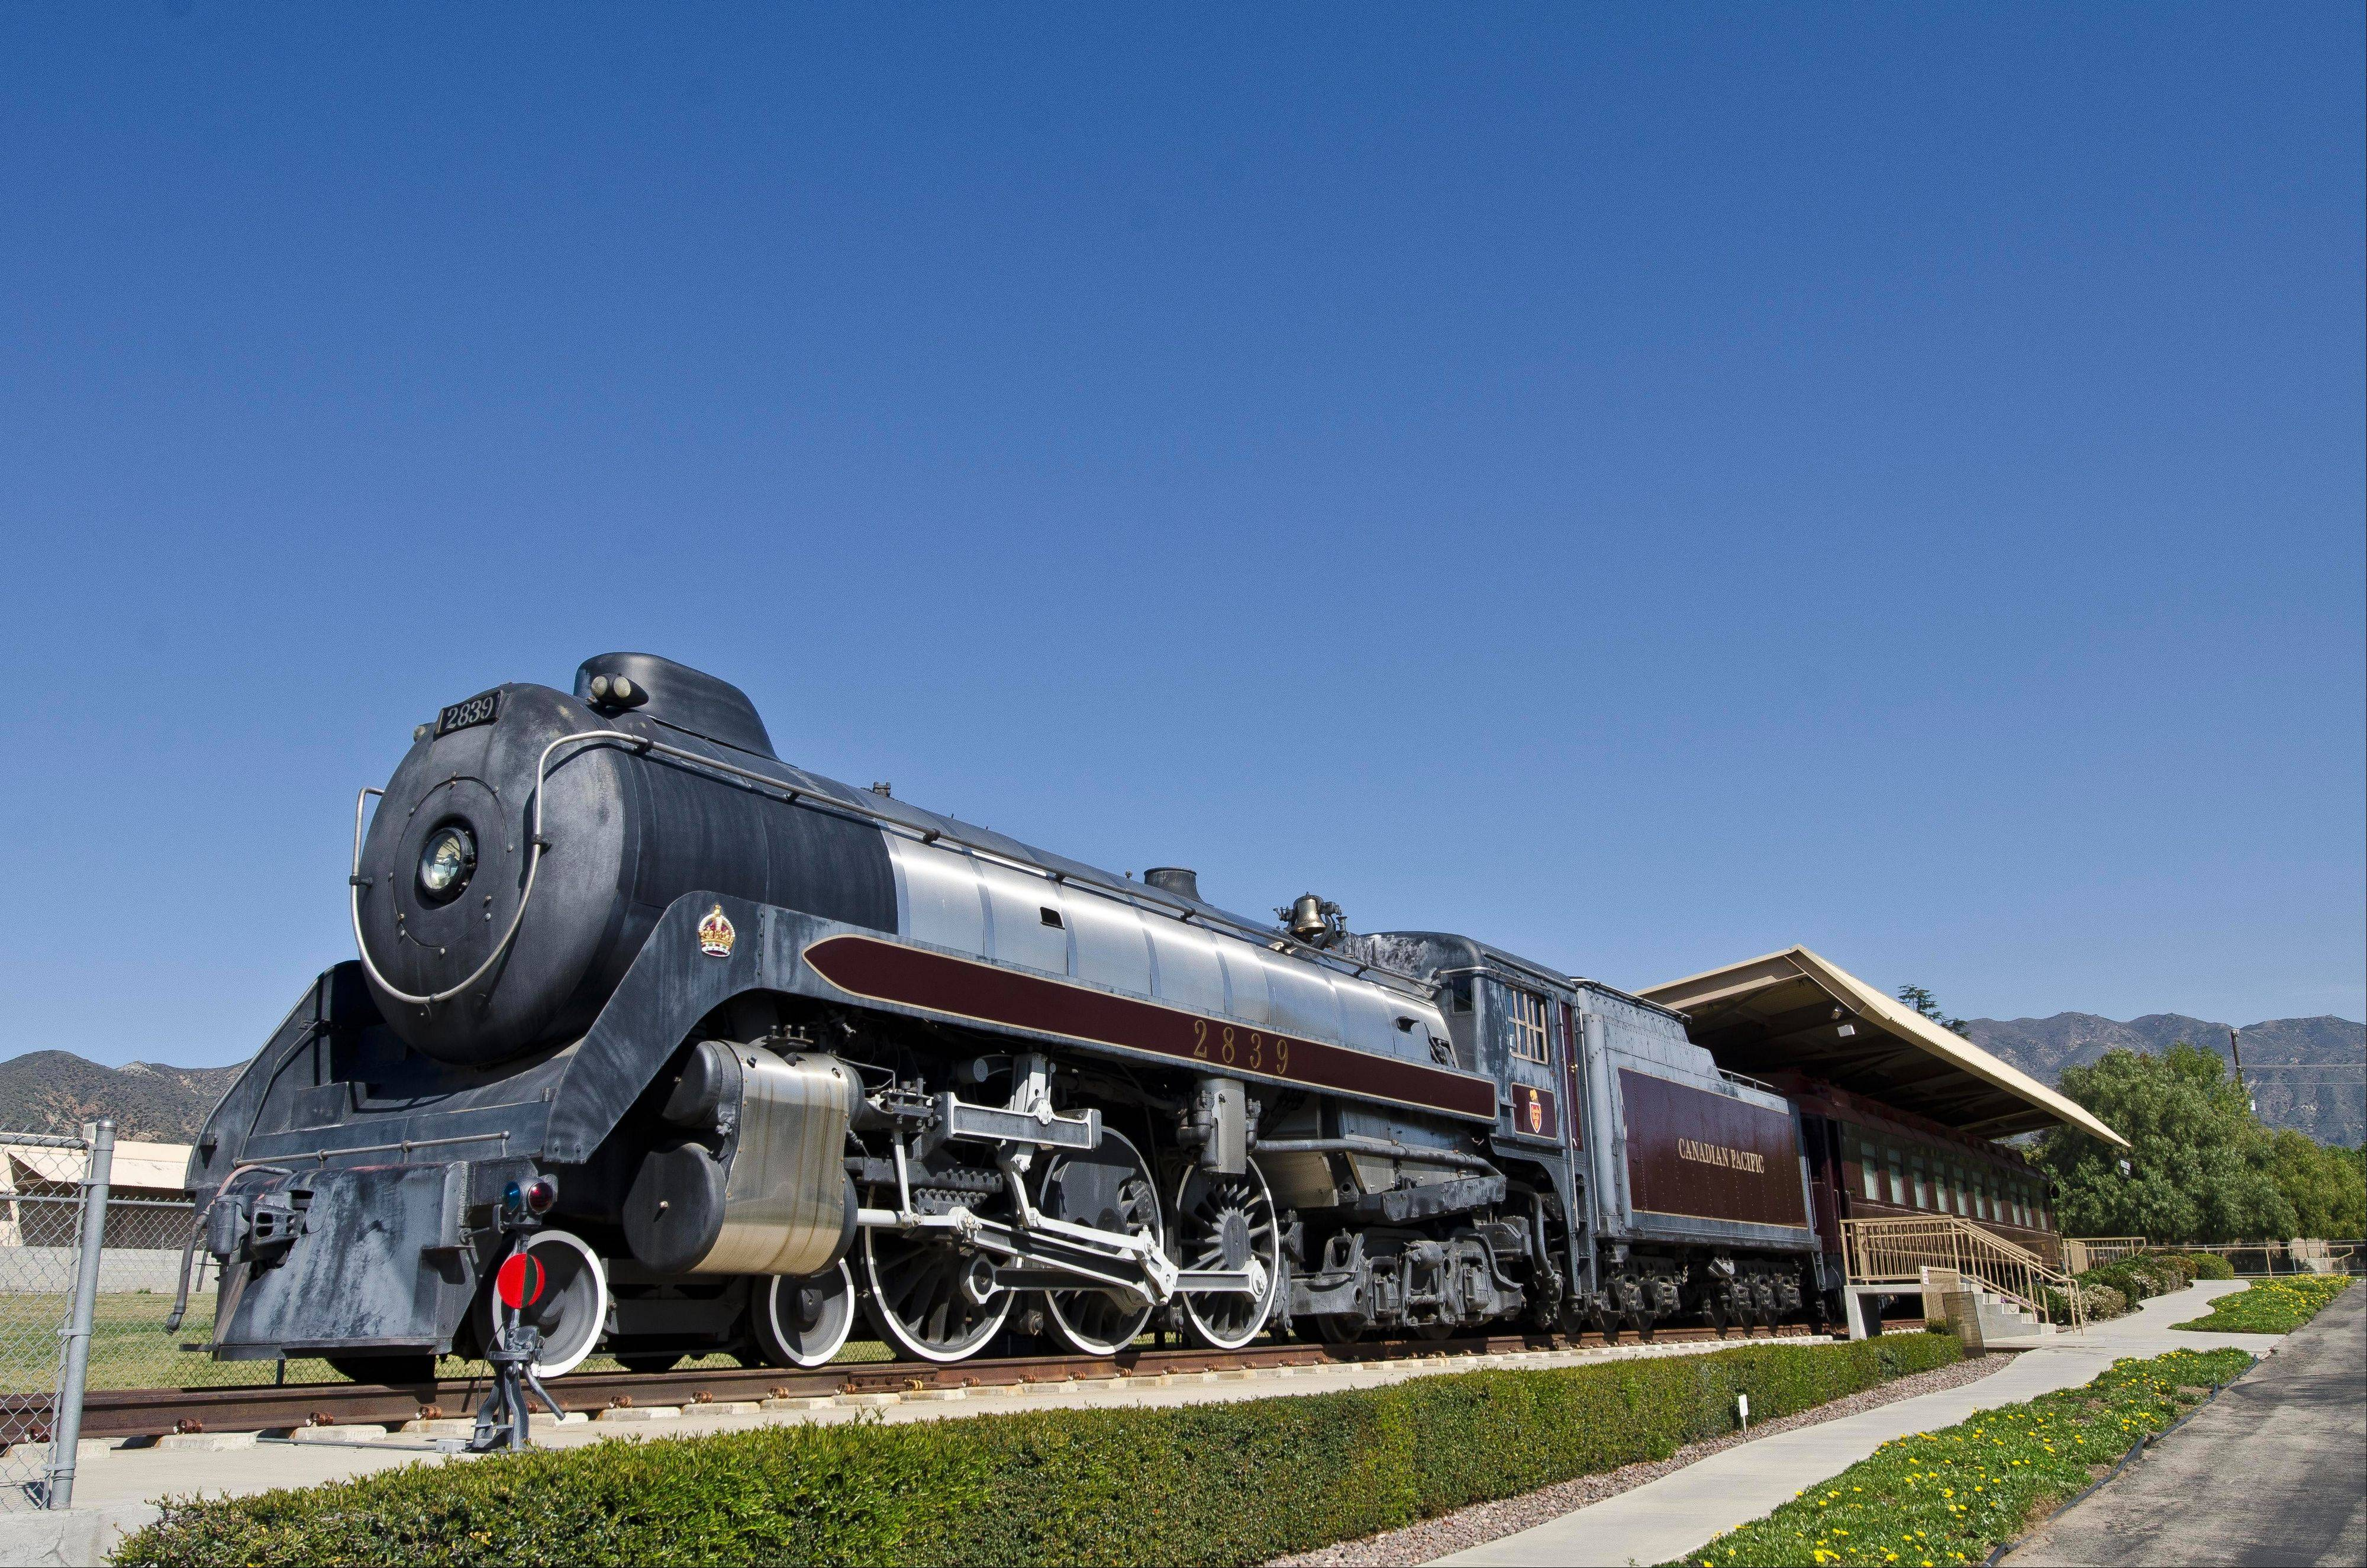 The museum has restored and now displays a 1937 Canadian Pacific Royal Hudson locomotive.